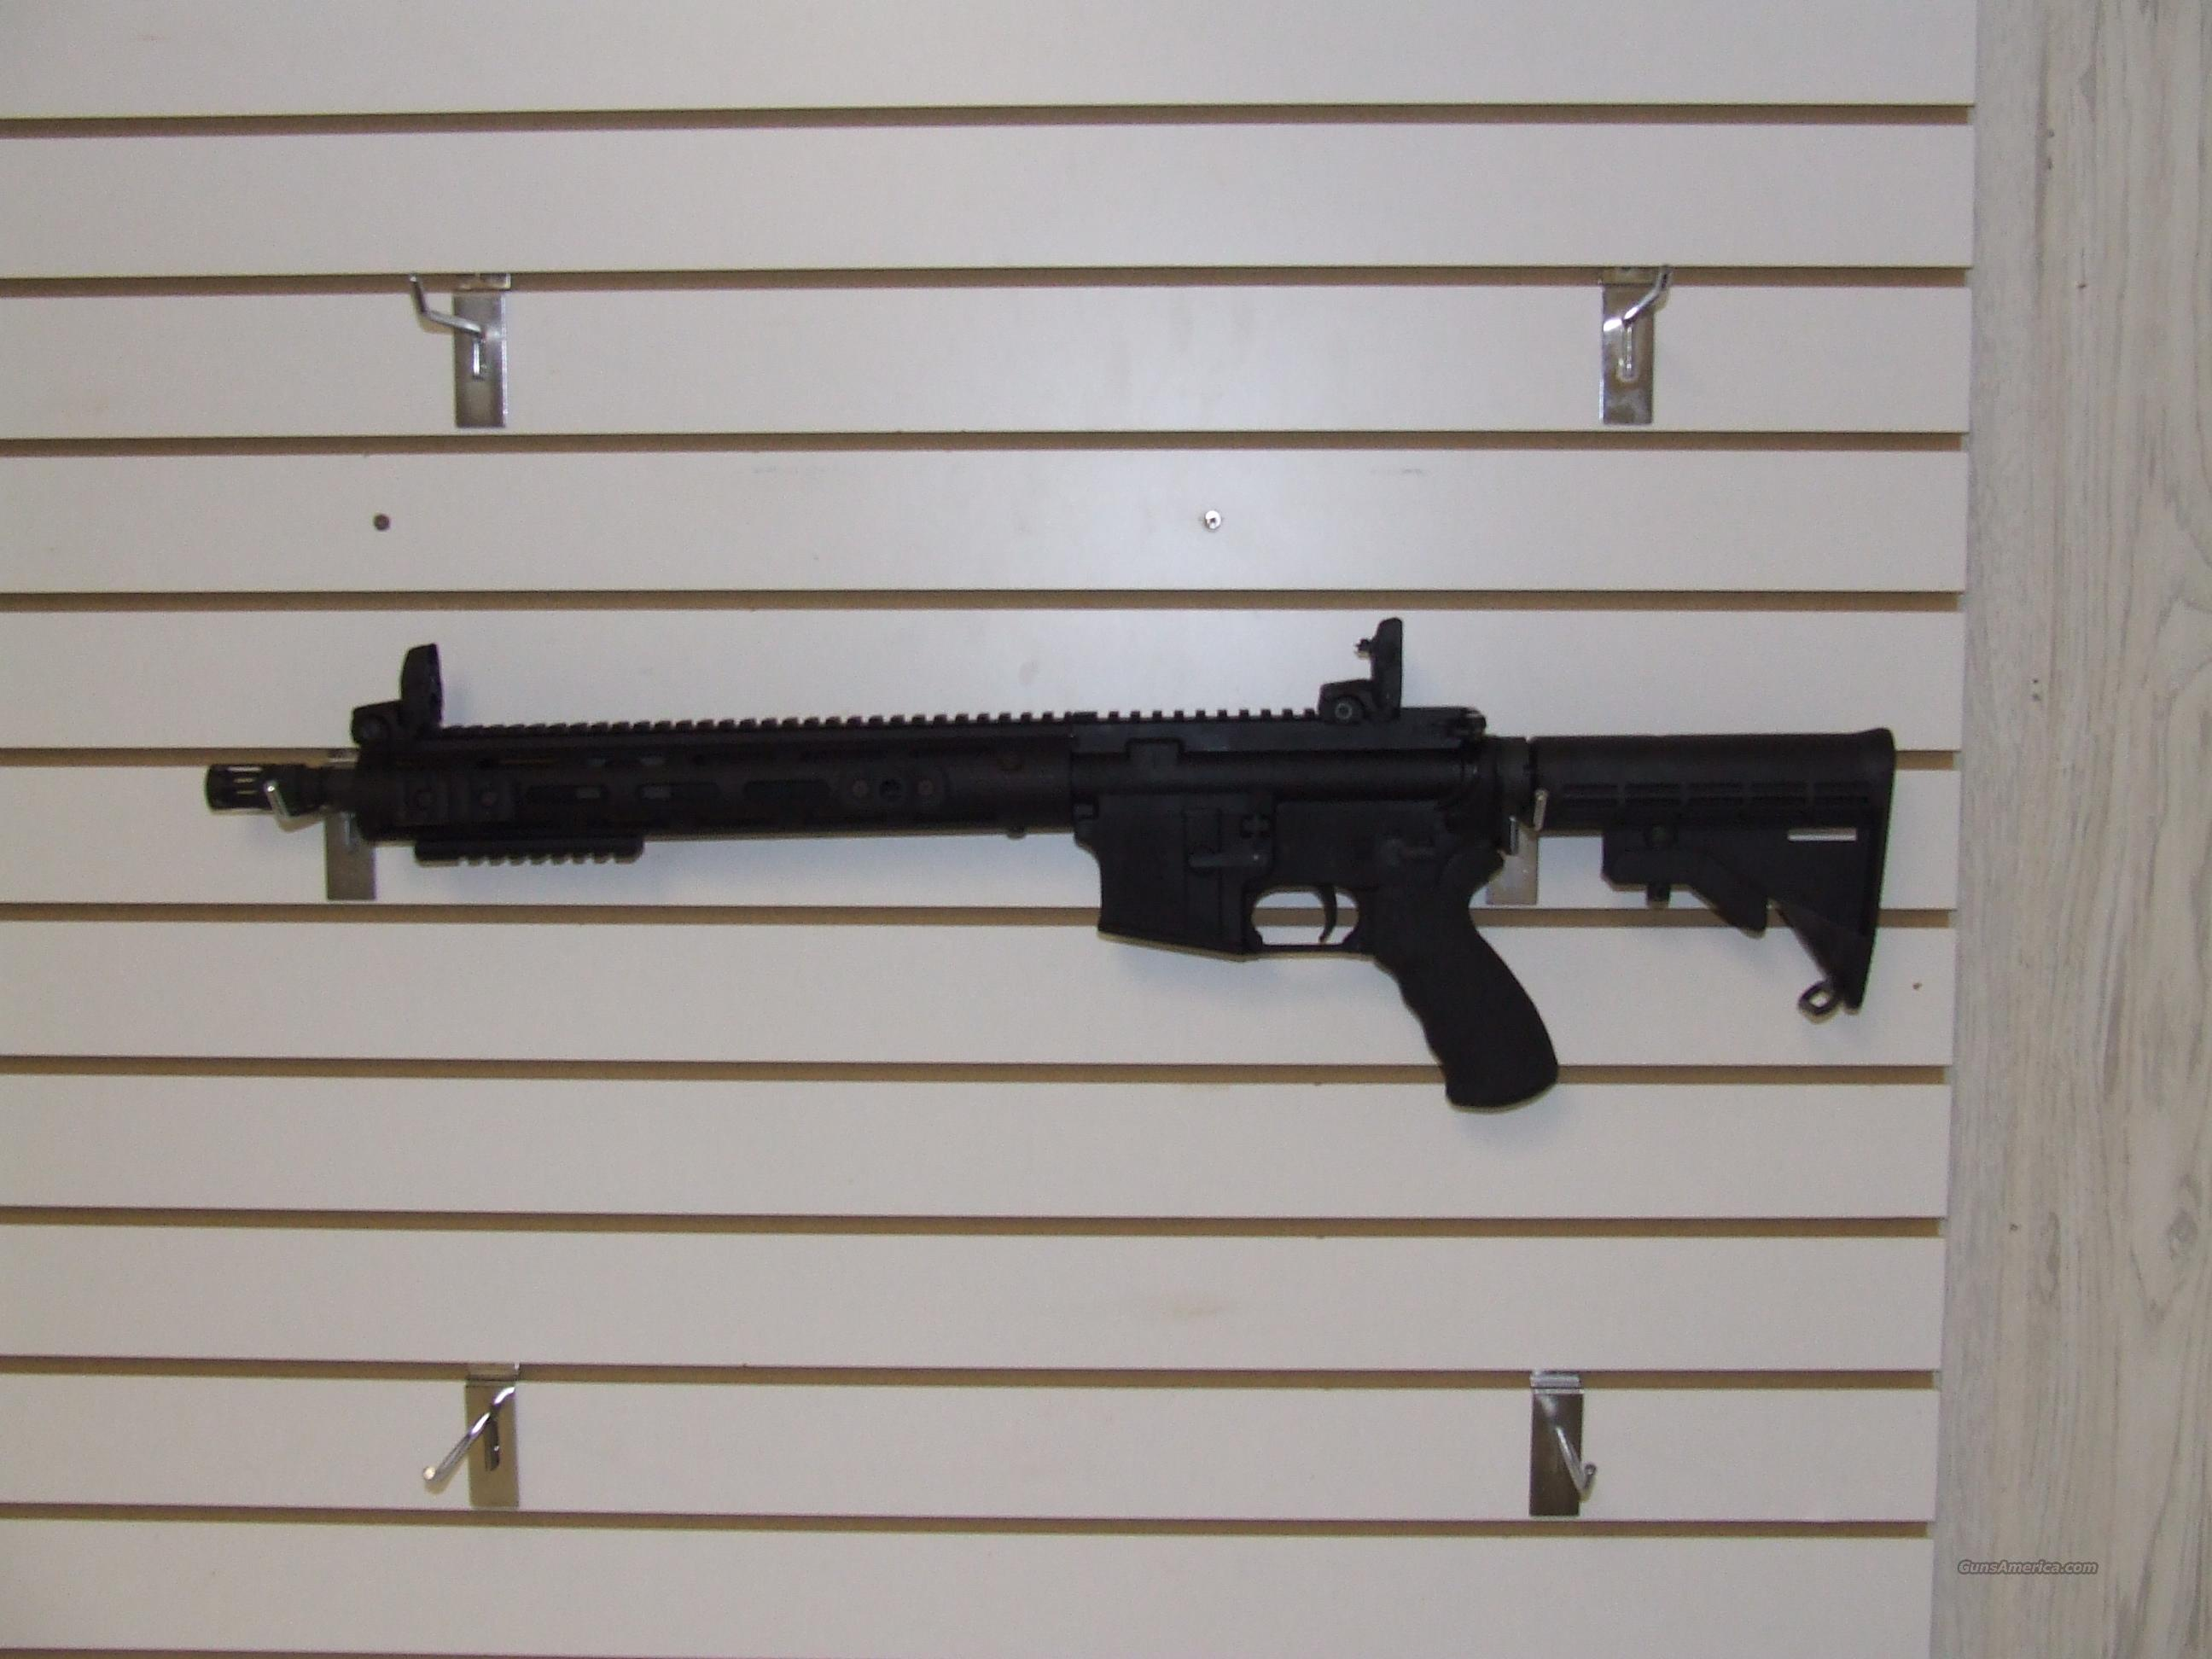 LMT (LEWIS MACHINE & TOOL  Guns > Rifles > AR-15 Rifles - Small Manufacturers > Complete Rifle